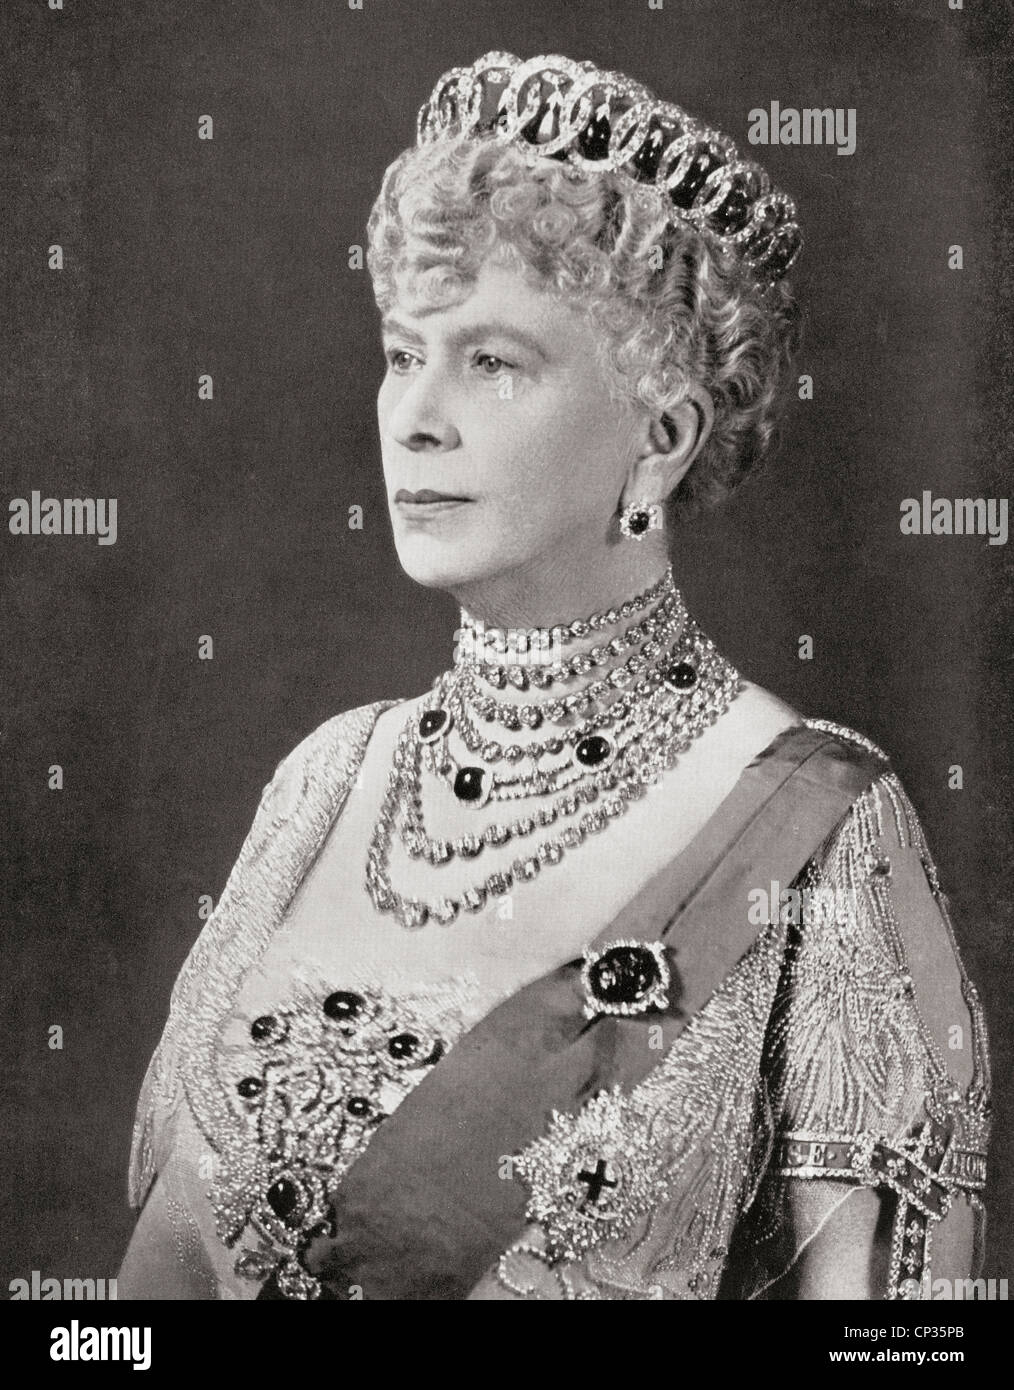 Mary of Teck, 1867 –1953. Queen consort as wife of George V. - Stock Image